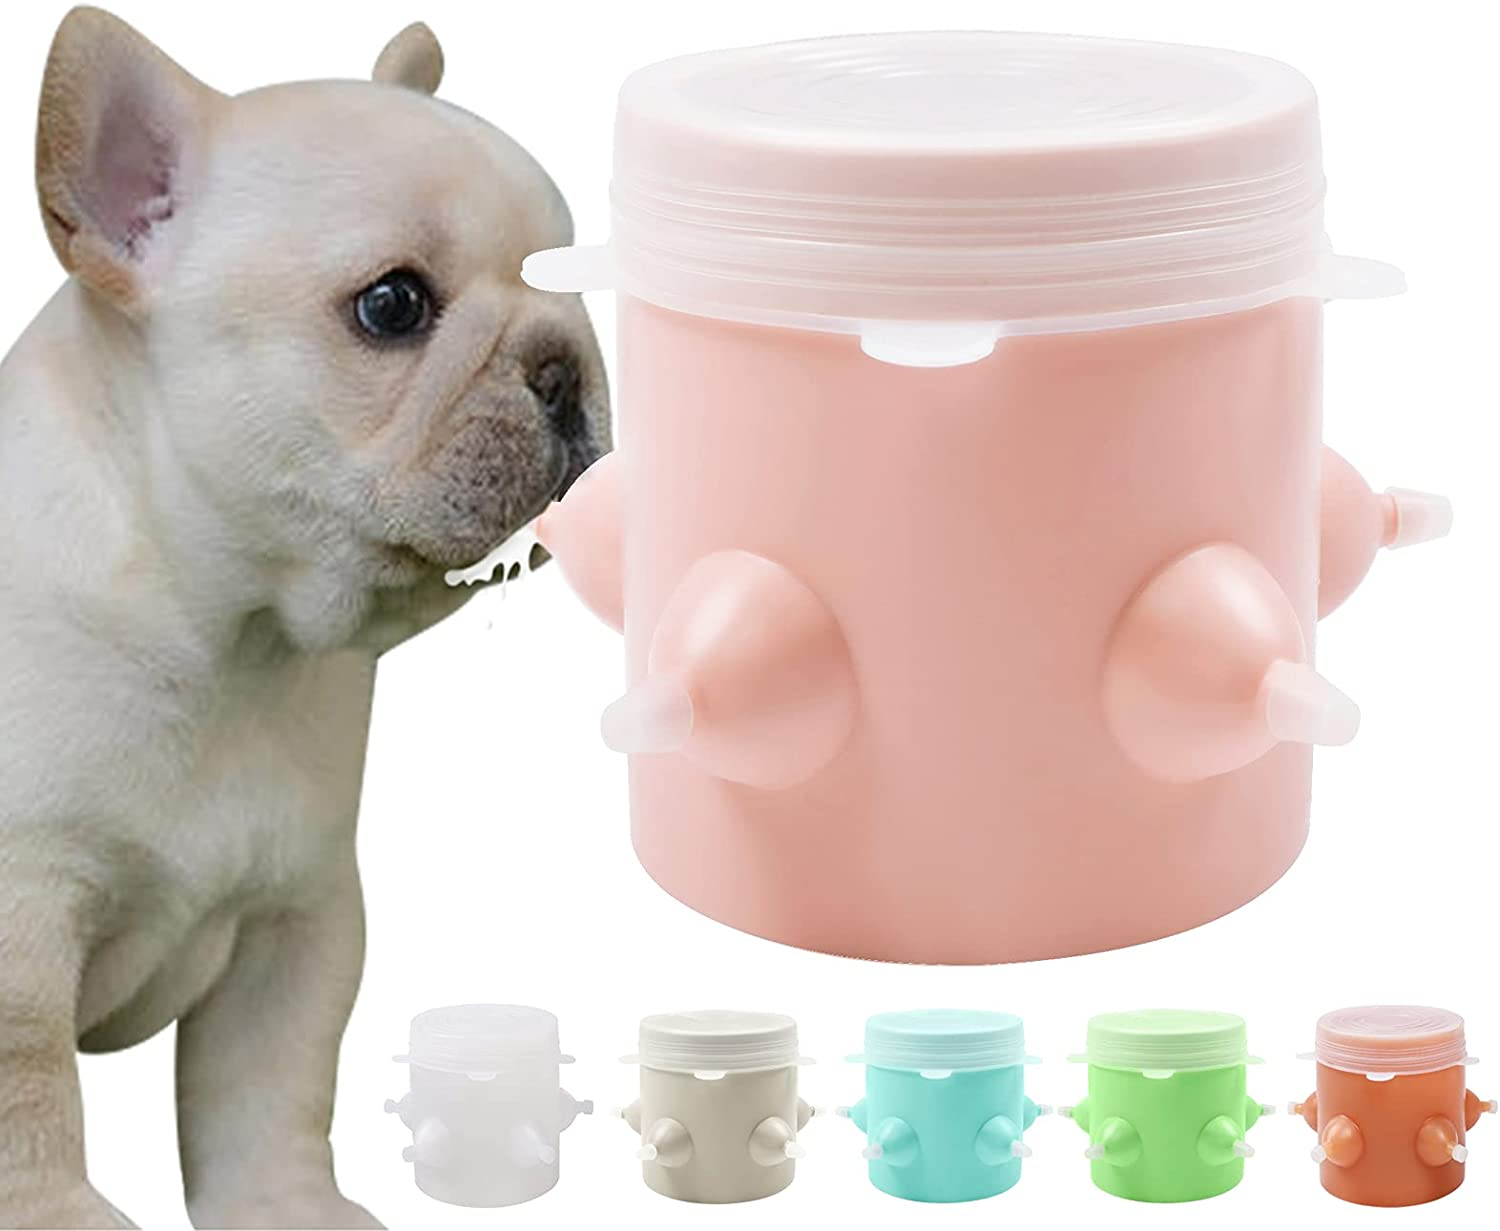 LONNAIKJ 2021 spring and summer new Sale price Silicone Puppies Milk Feeder Feeding Nipples Puppy with